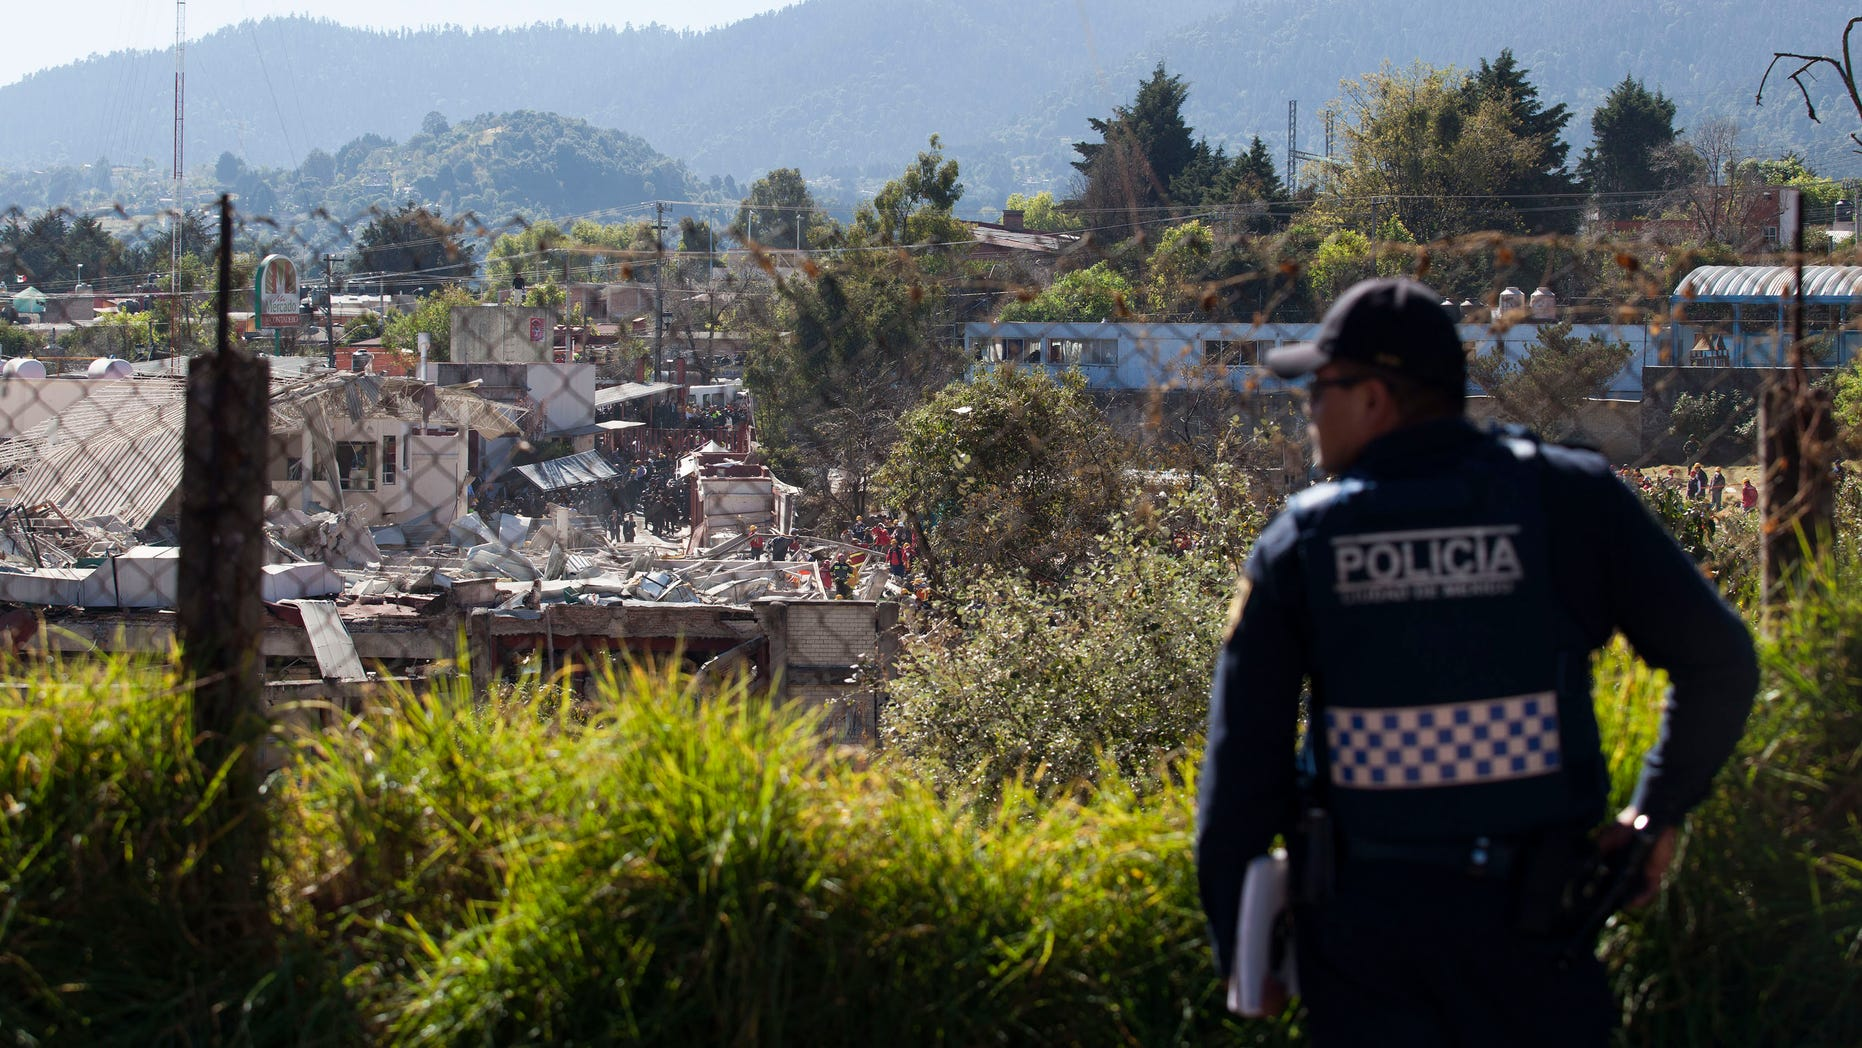 MEXICO CITY, MEXICO - JANUARY 29:  A police officer stands guard as search and rescue workers inspect the rubble of an explosion at a children's hospital on January 29, 2015 in Mexico City, Mexico. Officials believe the explosion was caused by a leak from a gas truck. At least four people were killed and dozens injured. (Photo by Brett Gundlock/Getty Images)